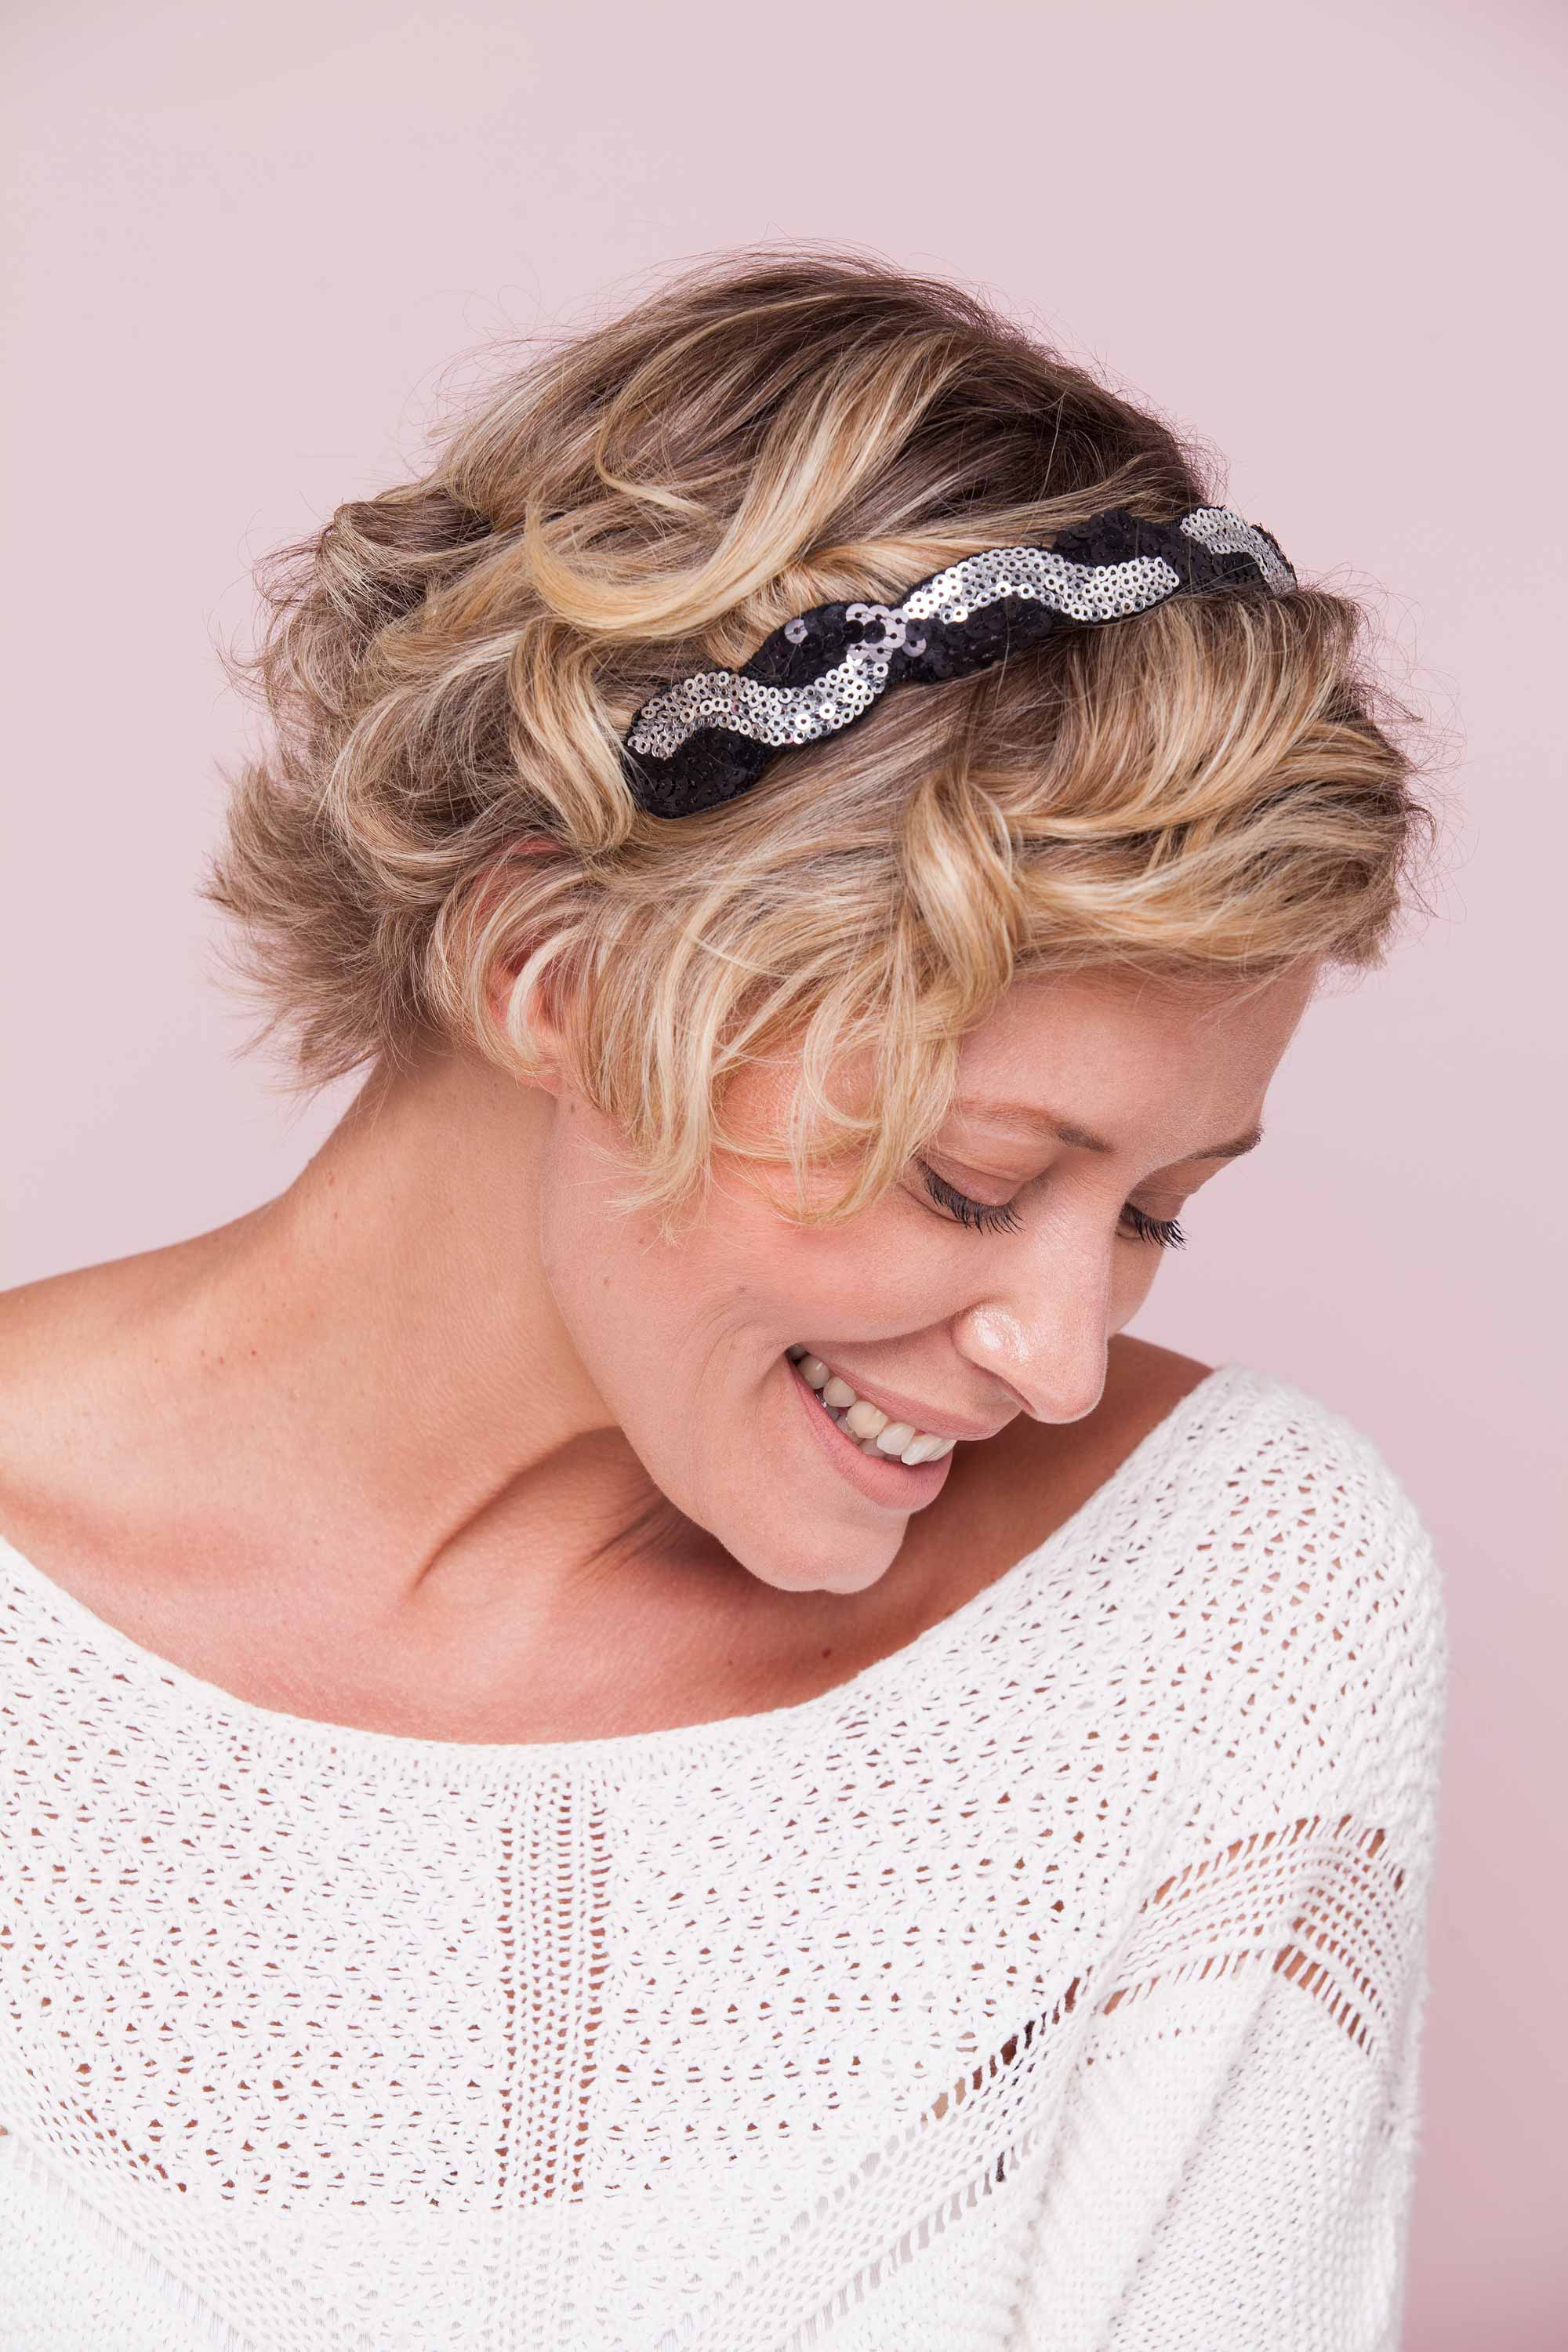 14 Short Summer Hairstyles To Help You Beat The Heat In Style   All With Short Haircuts With Headbands (View 24 of 25)